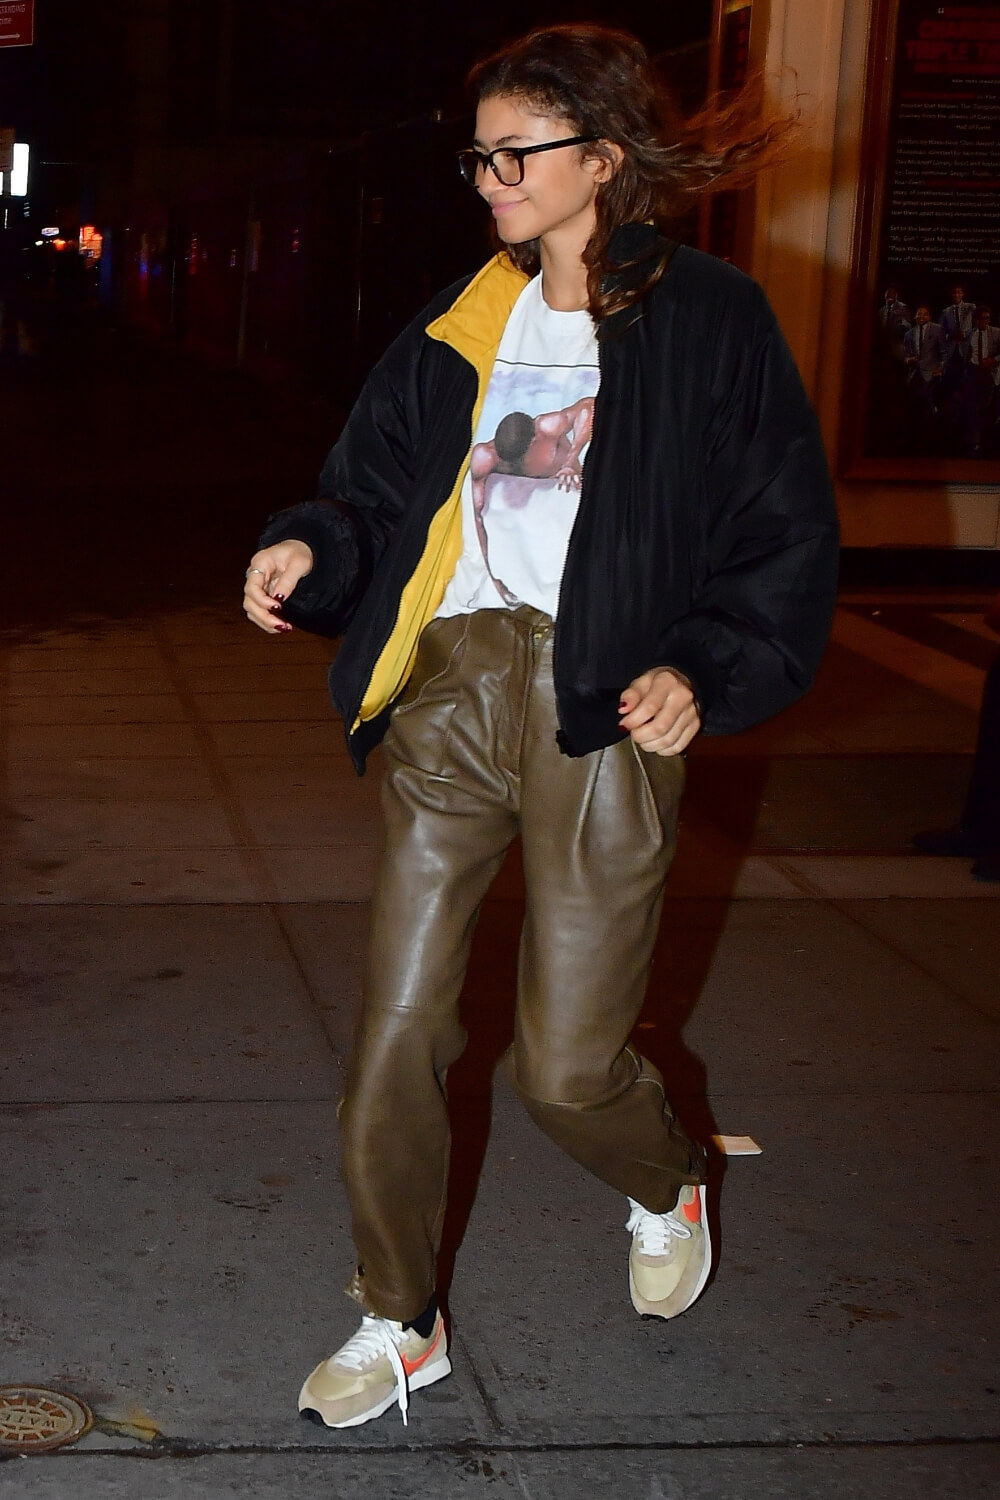 Zendaya steps out in NYC